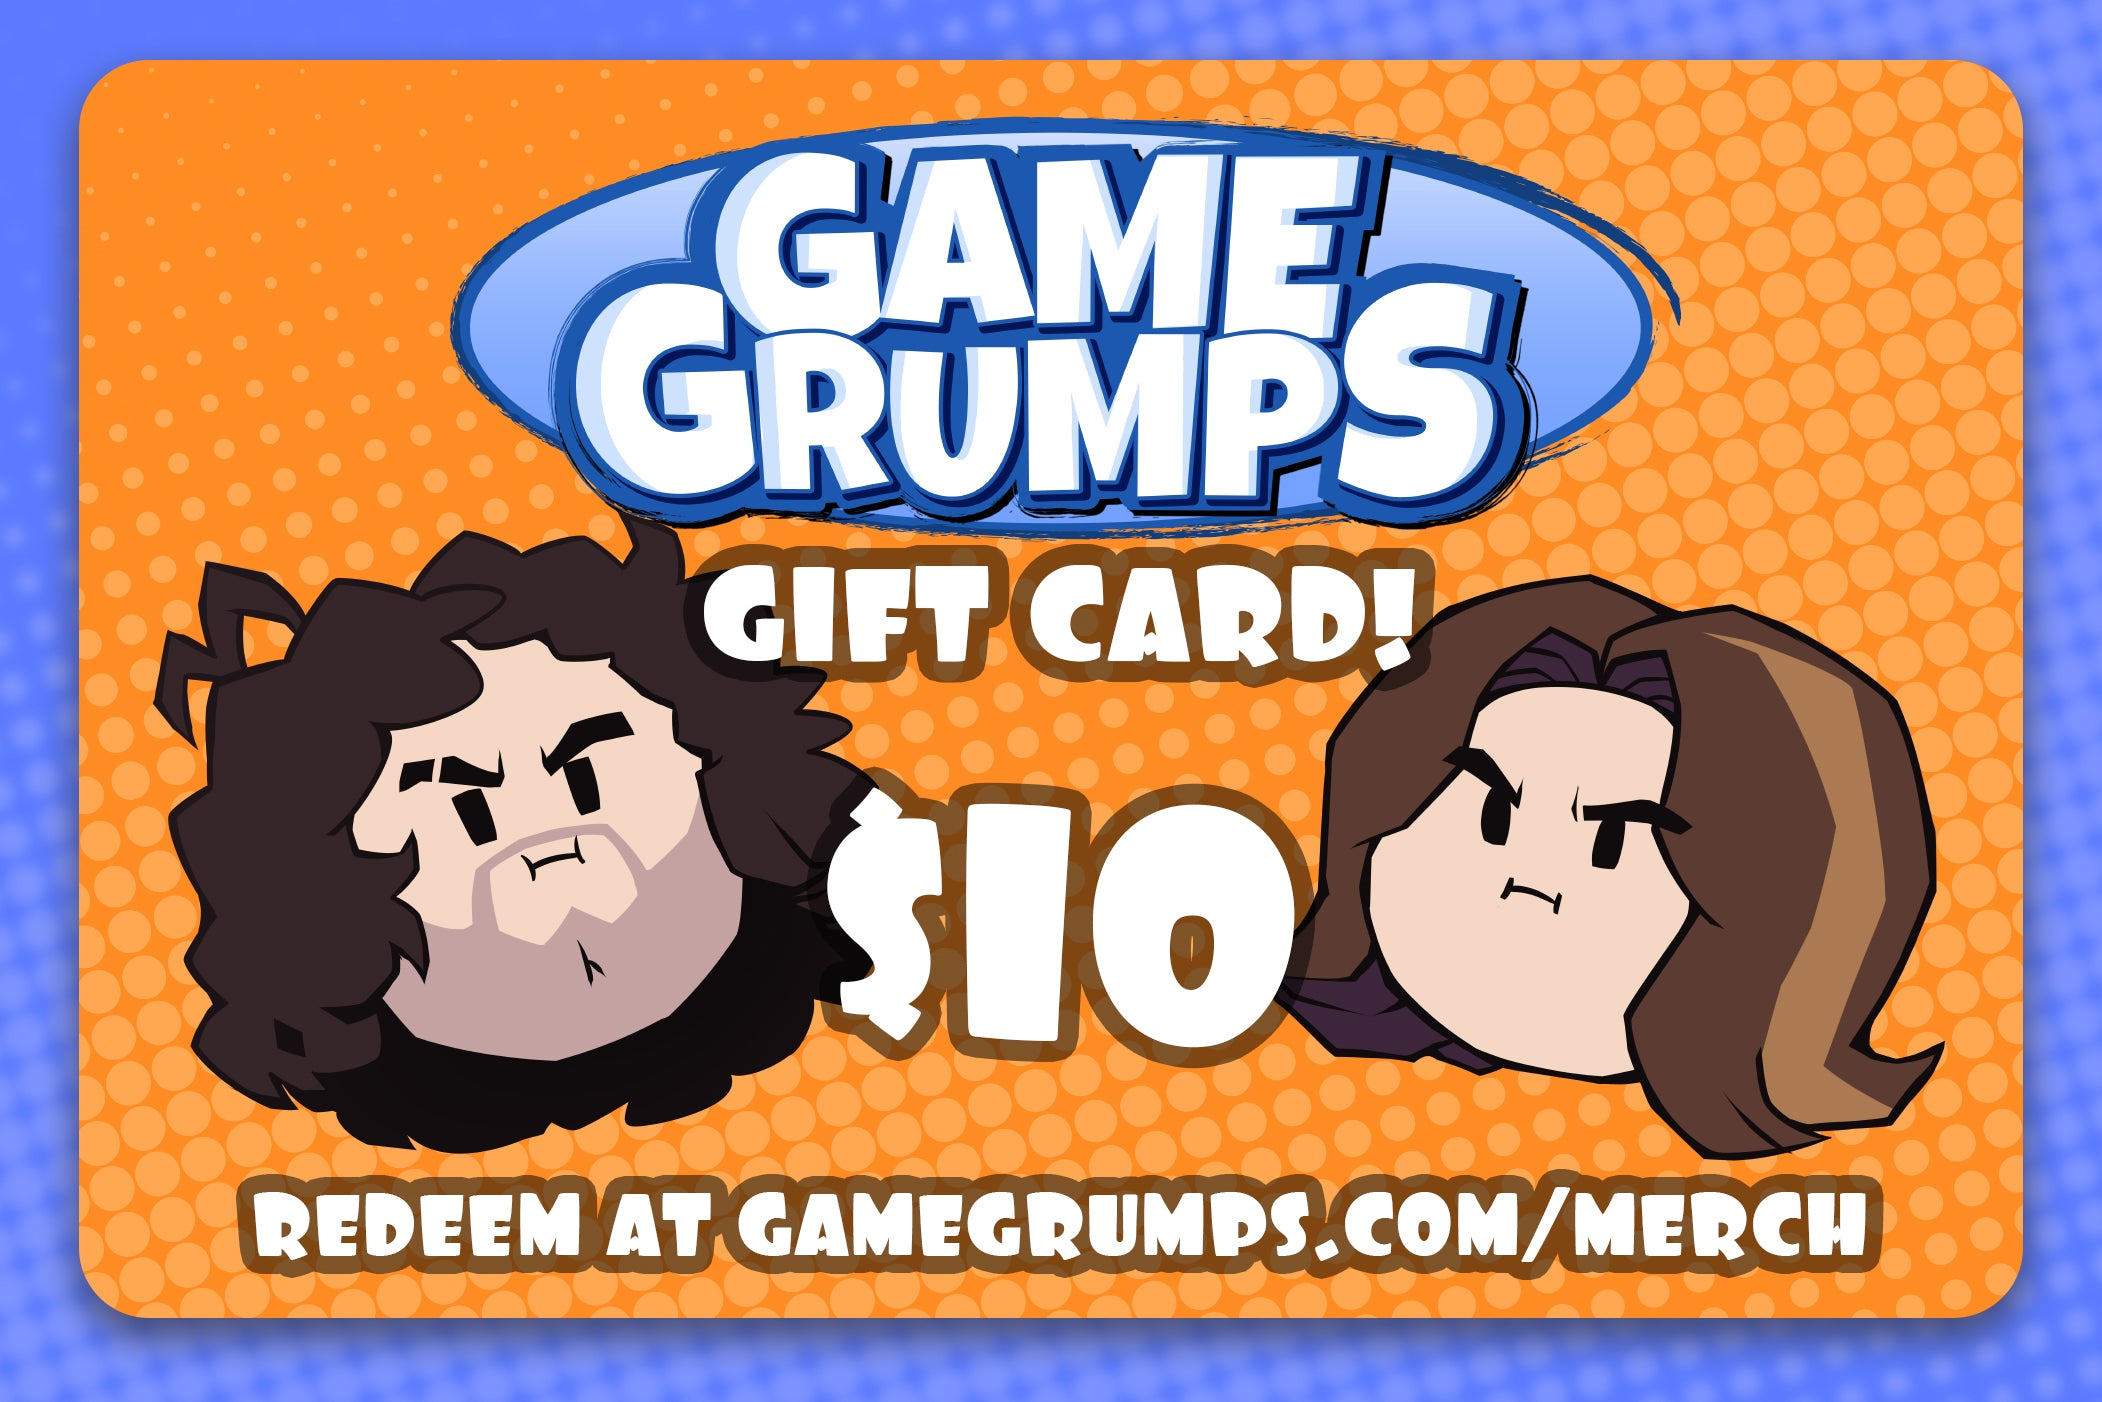 Game Grumps Gift Card